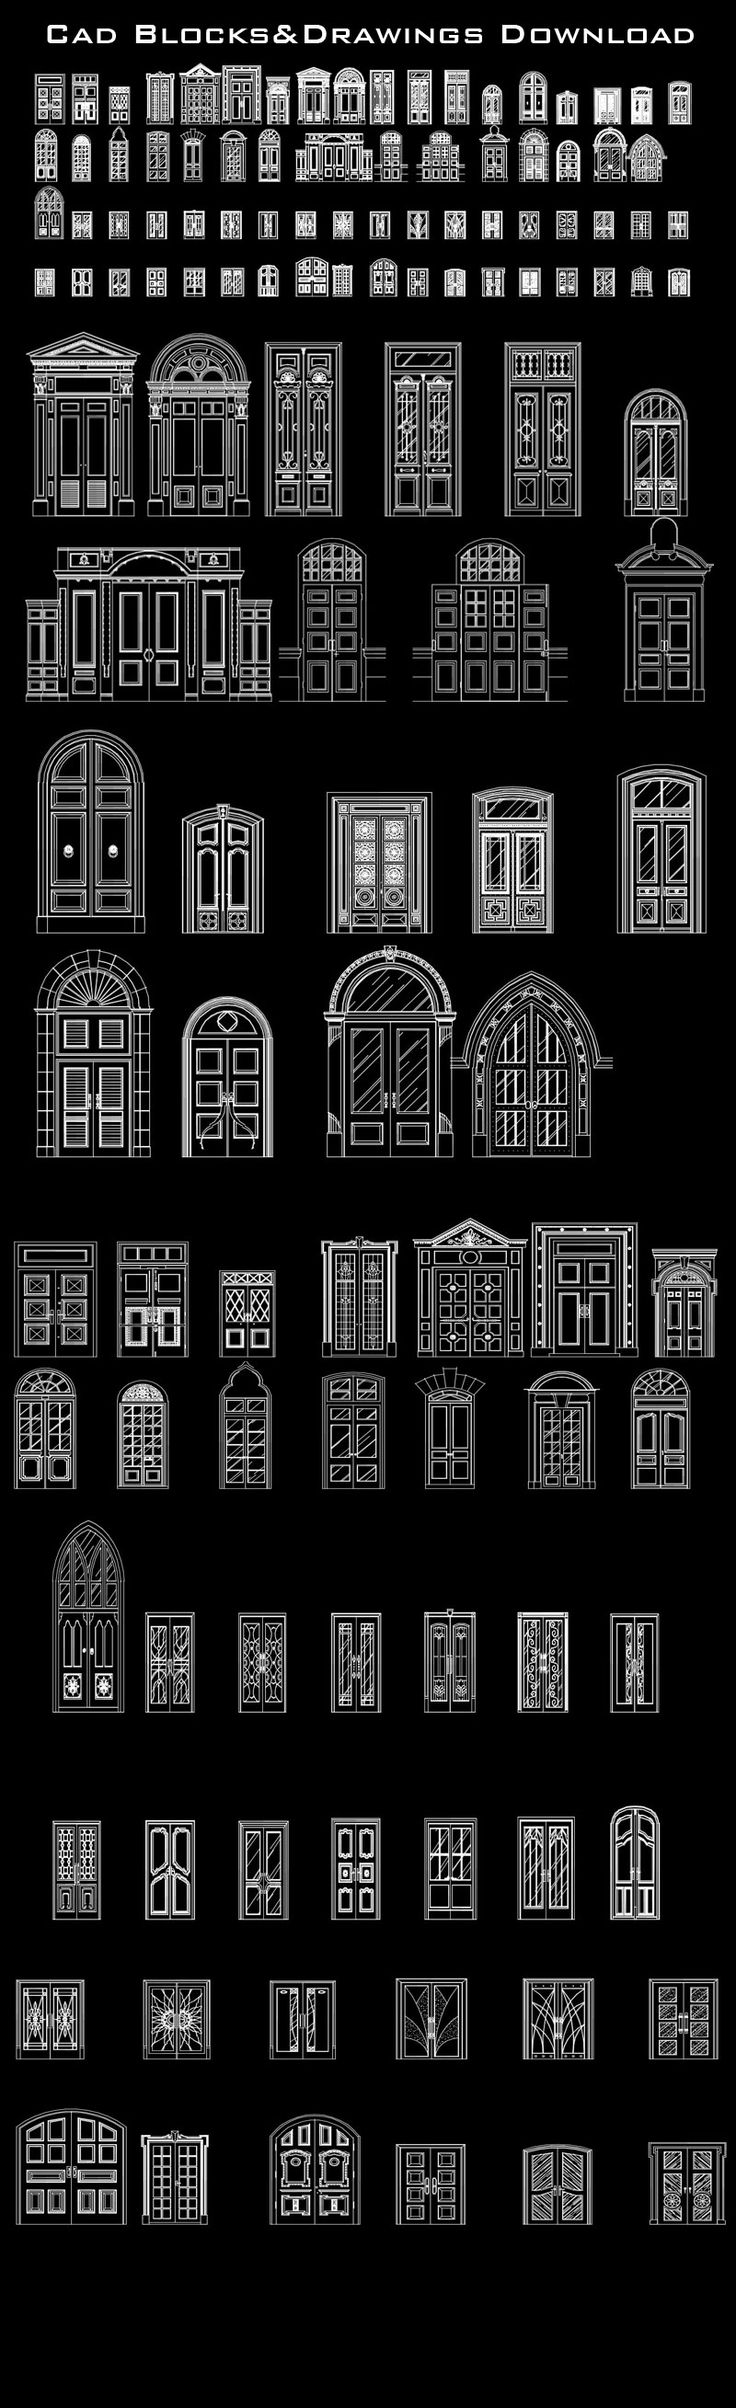 Best 25 autocad ideas on pinterest autocad revit cad for 2d design online